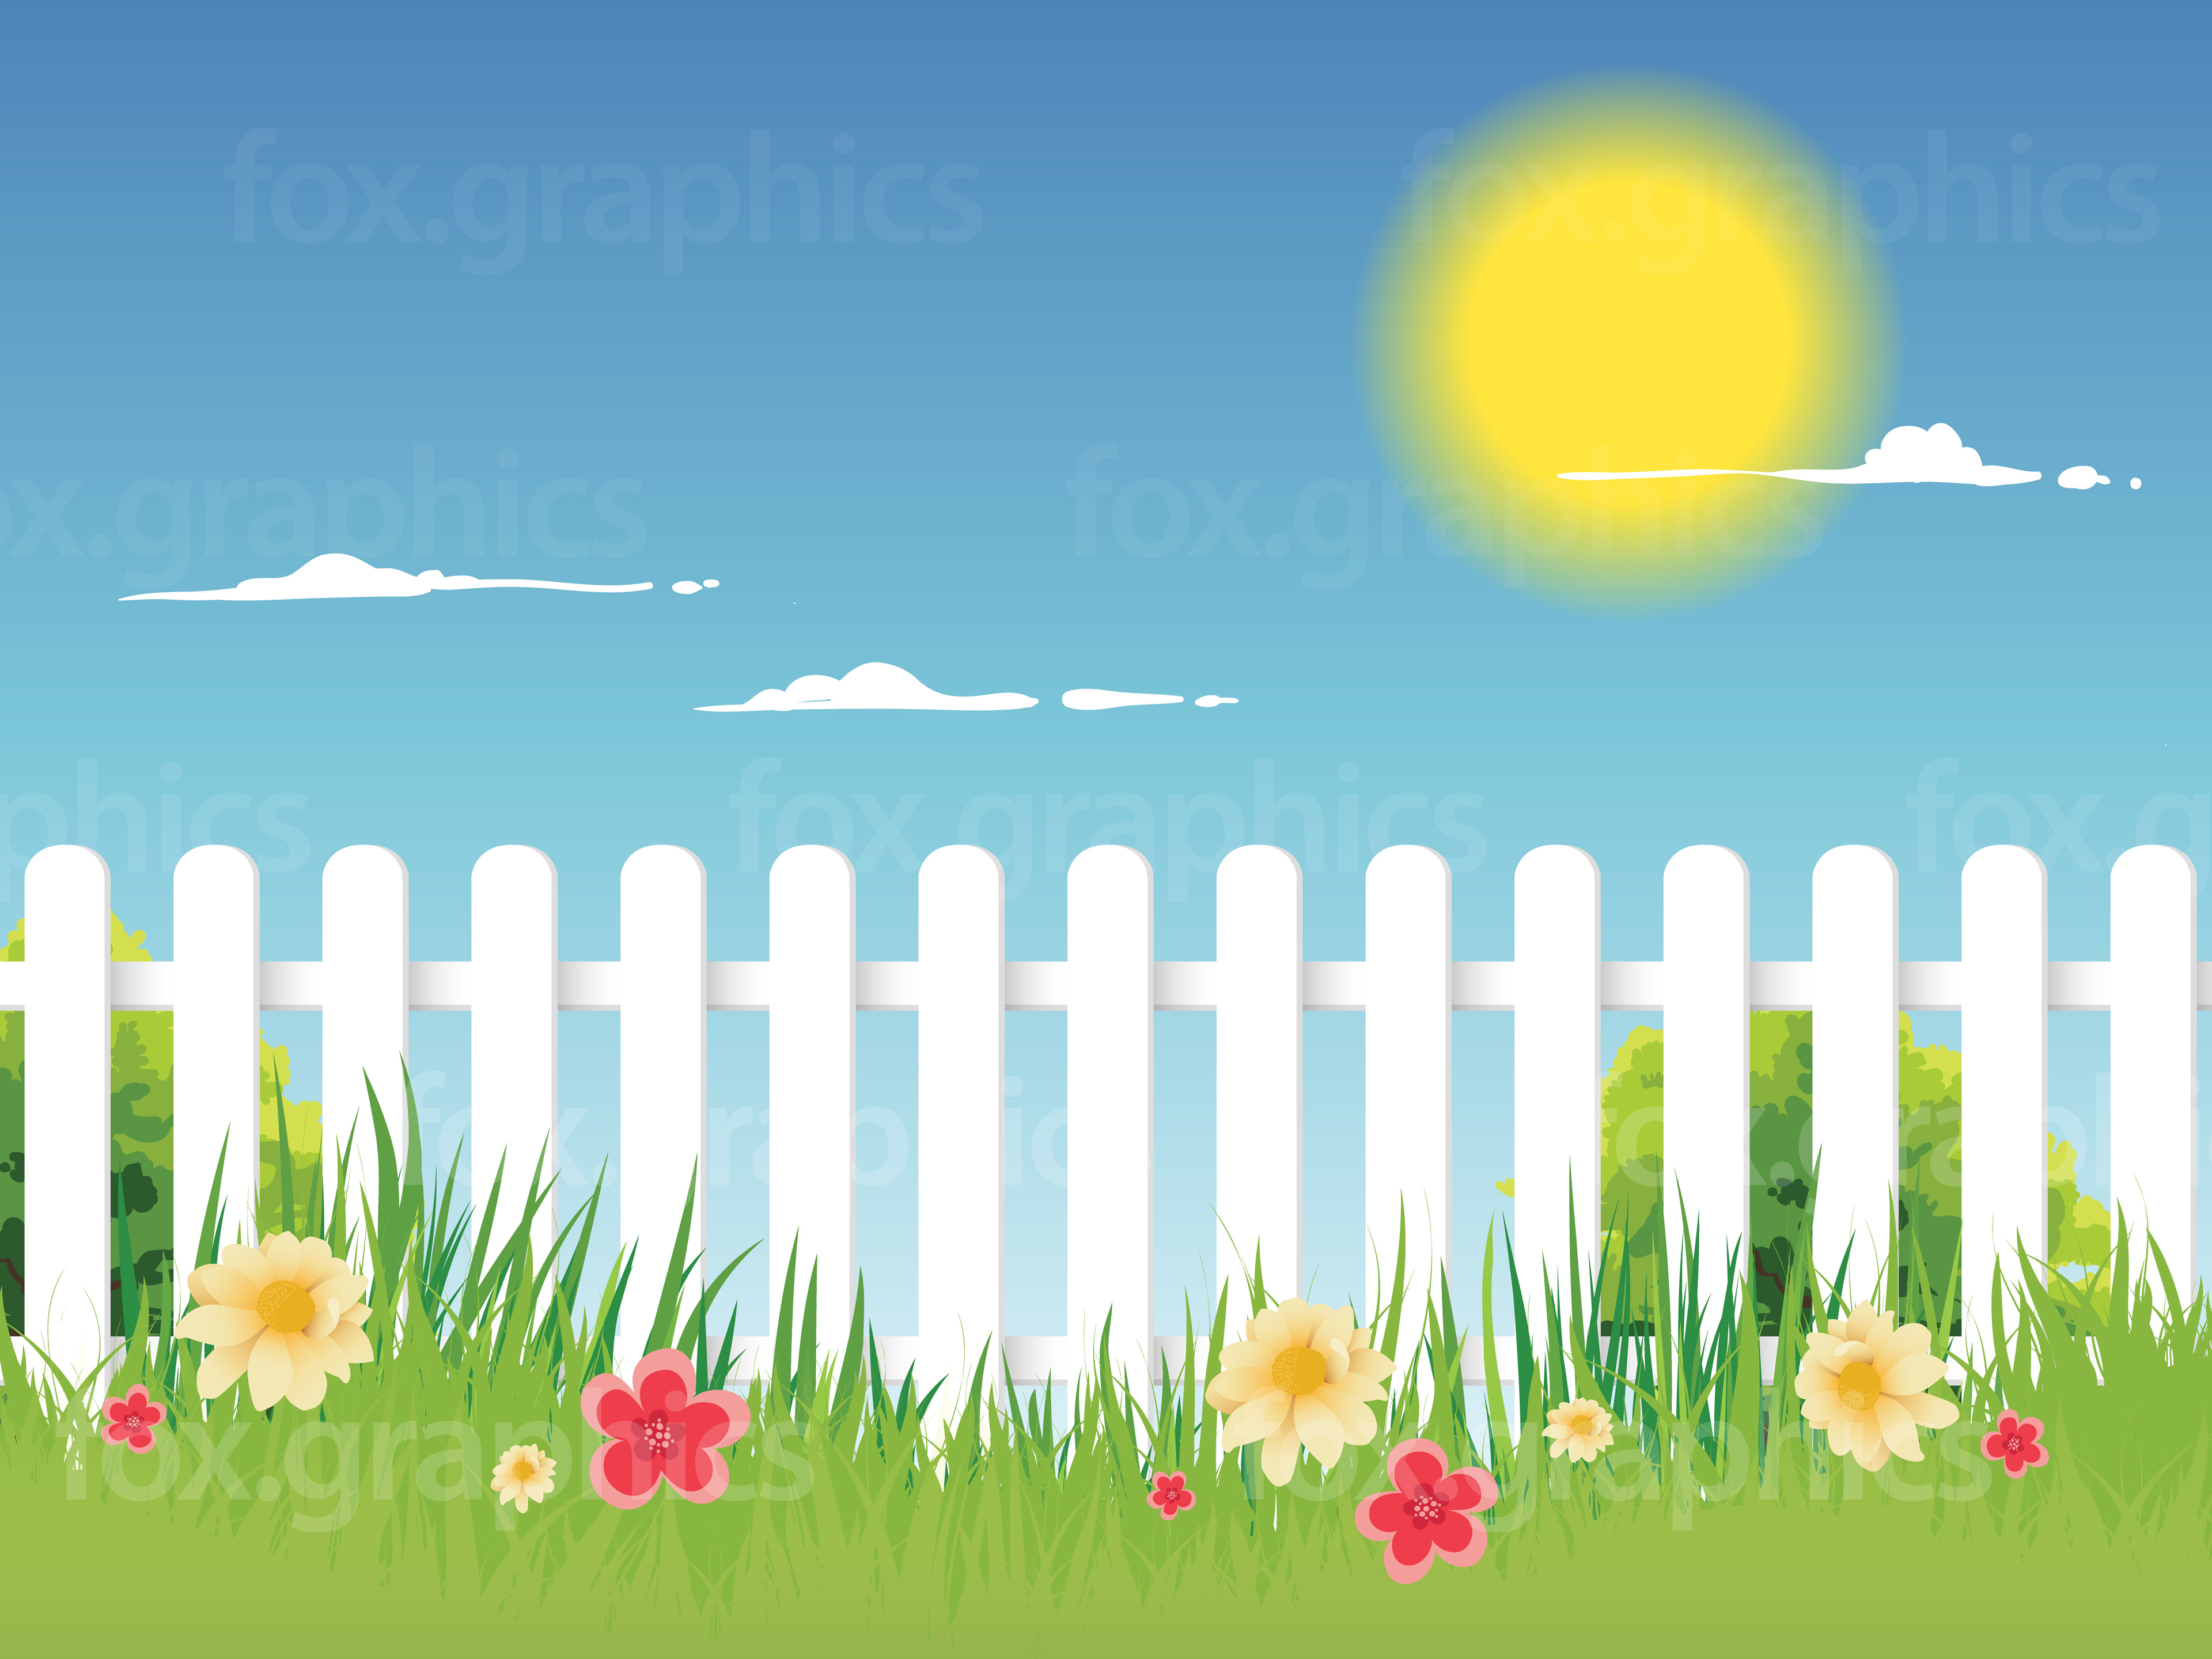 3840x2880 Vector Picket Fence Background